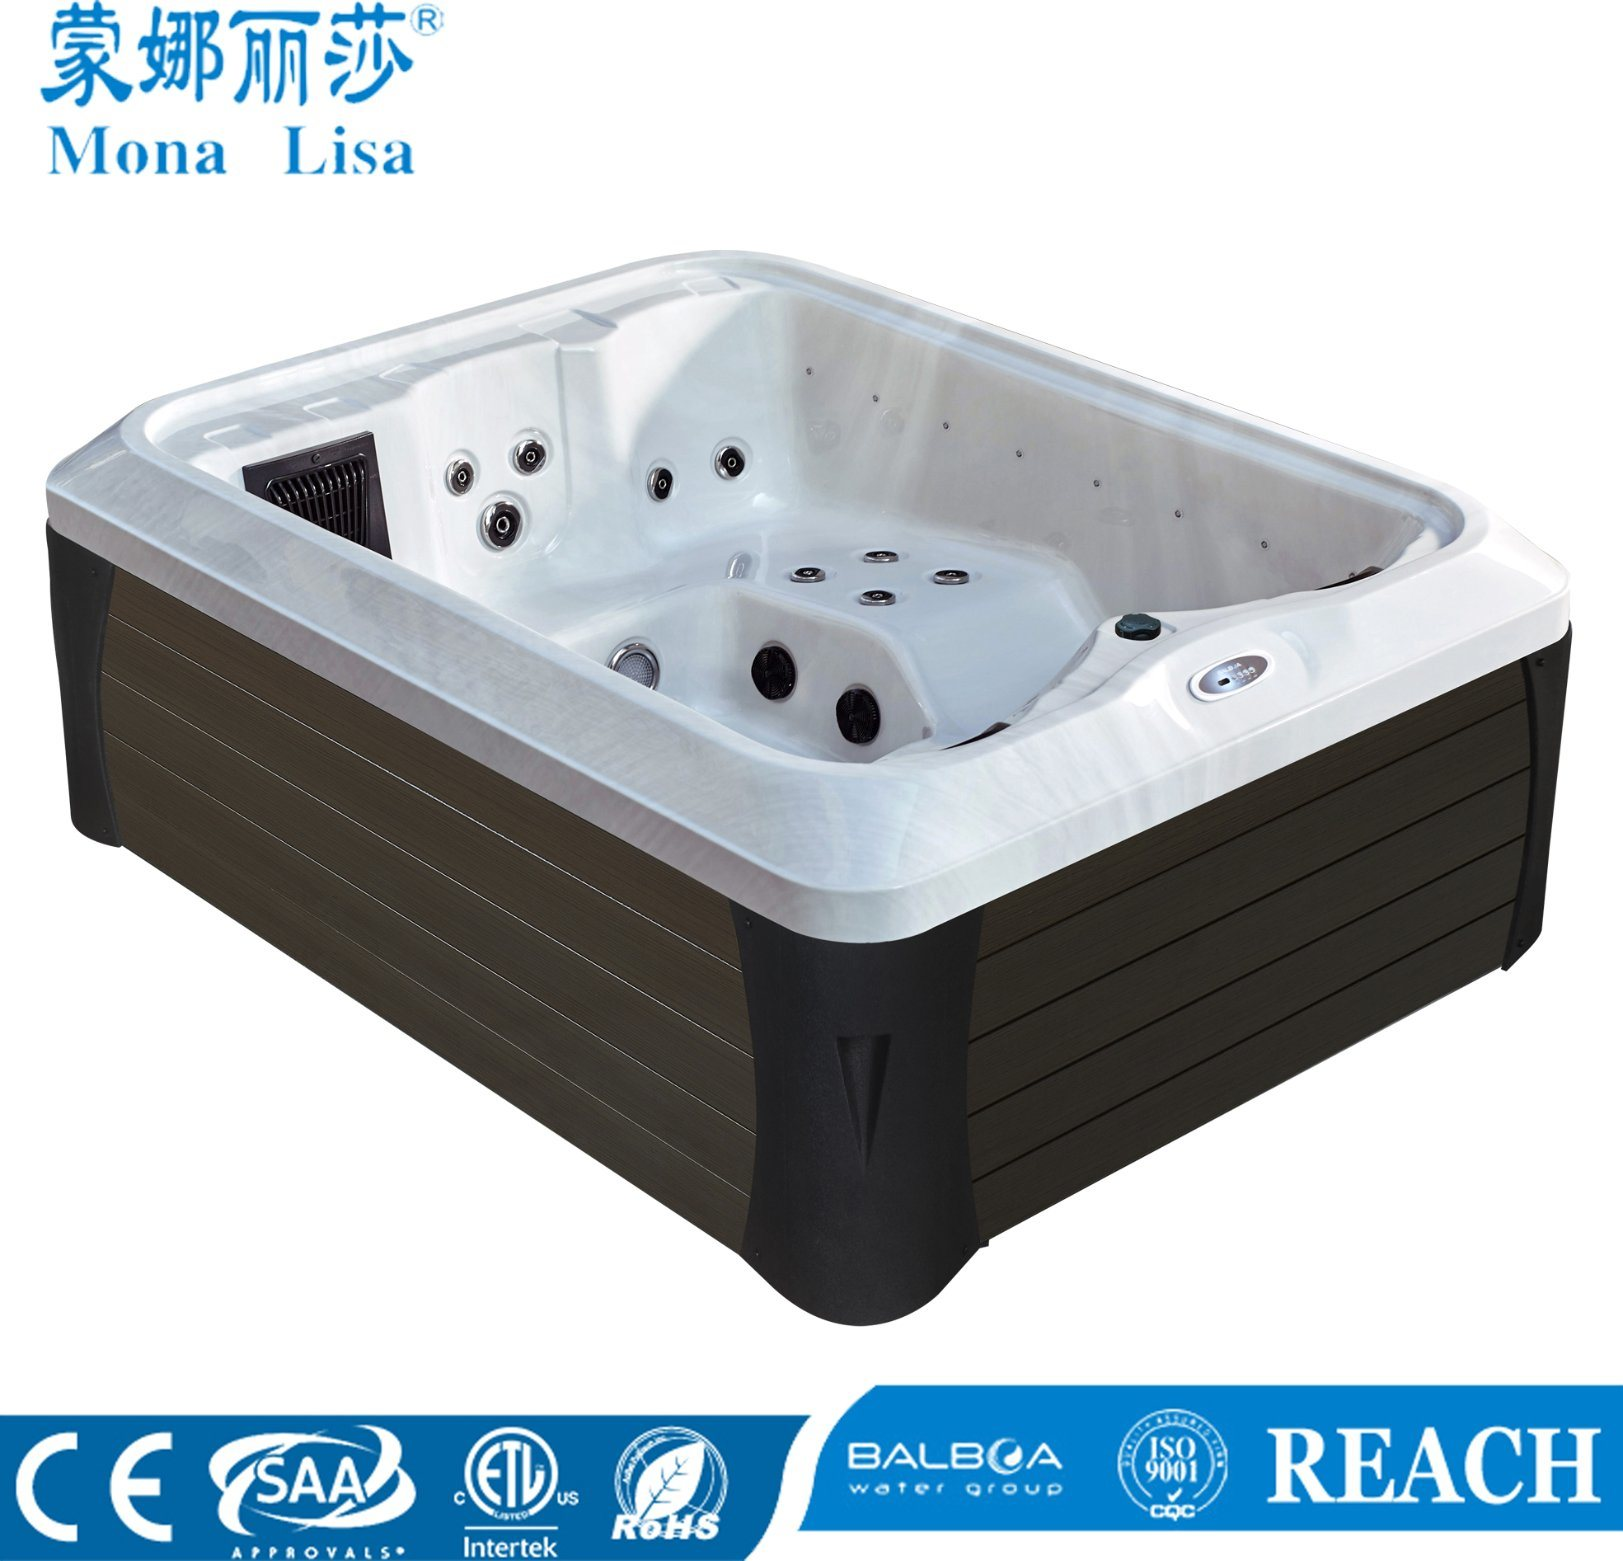 Jacuzzi Whirlpool Hot Item Double Sex Outdoor Fiberglass Jacuzzi Whirlpool Spa M 3392